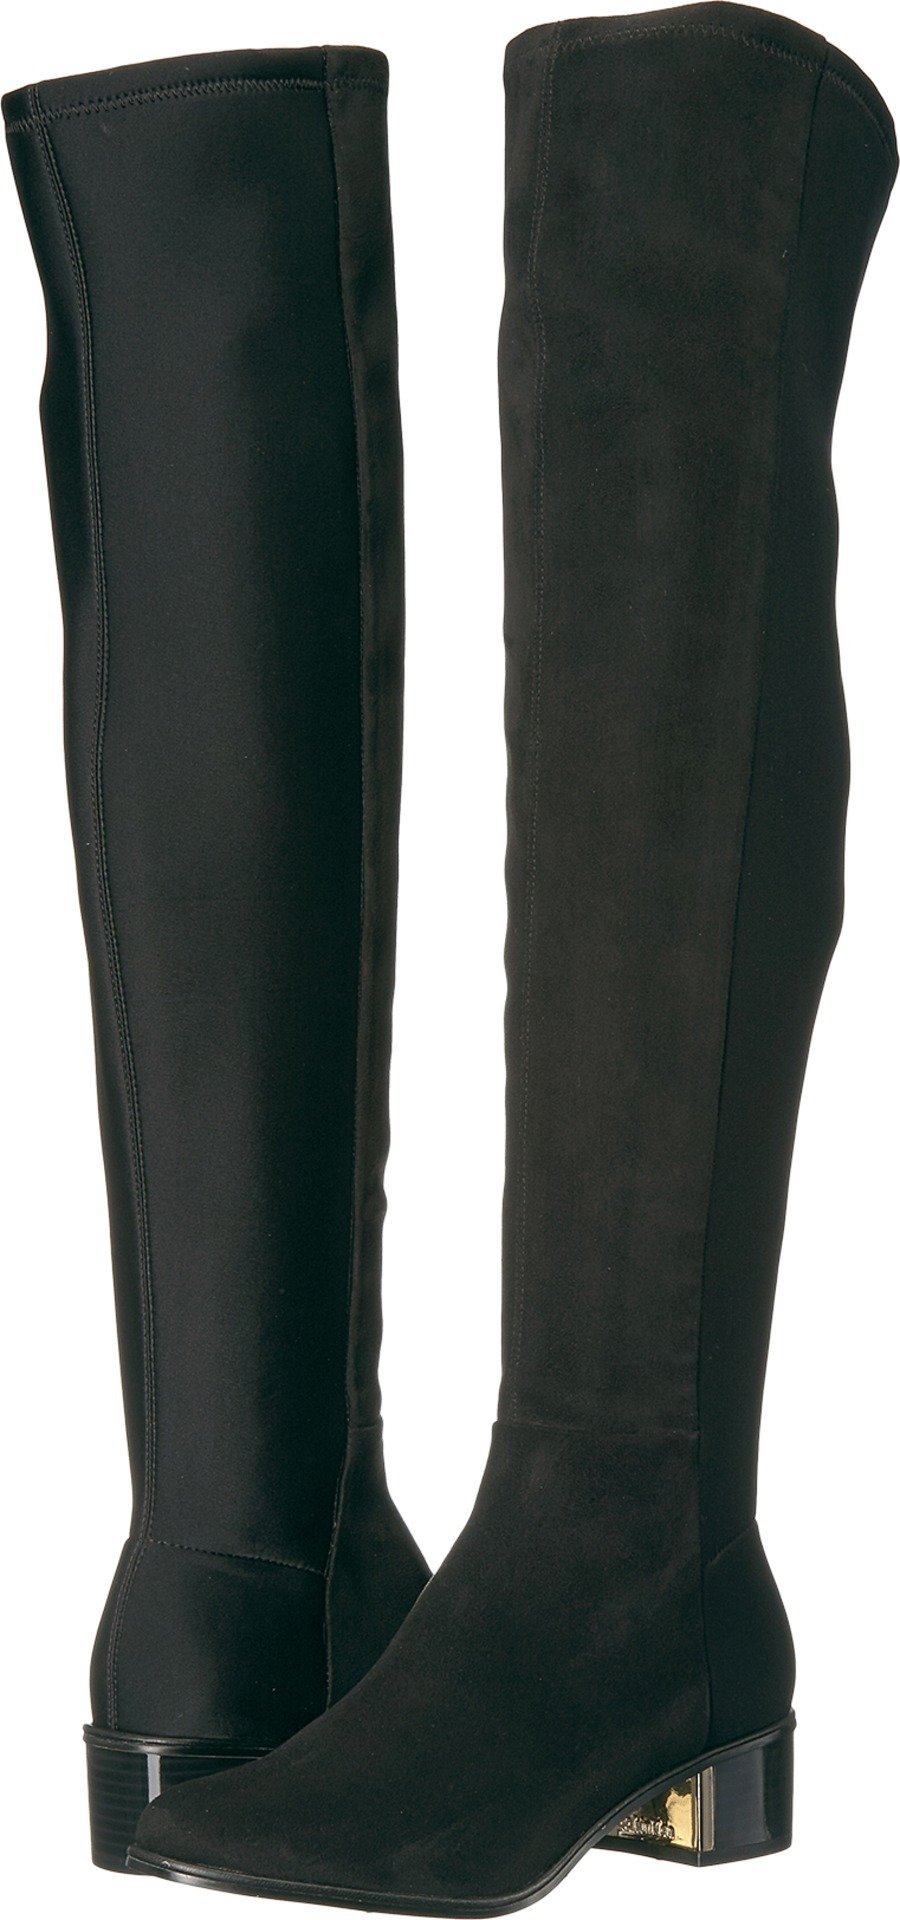 Calvin Klein Women's Carney Over The Knee Boot, Black, 8 Medium US